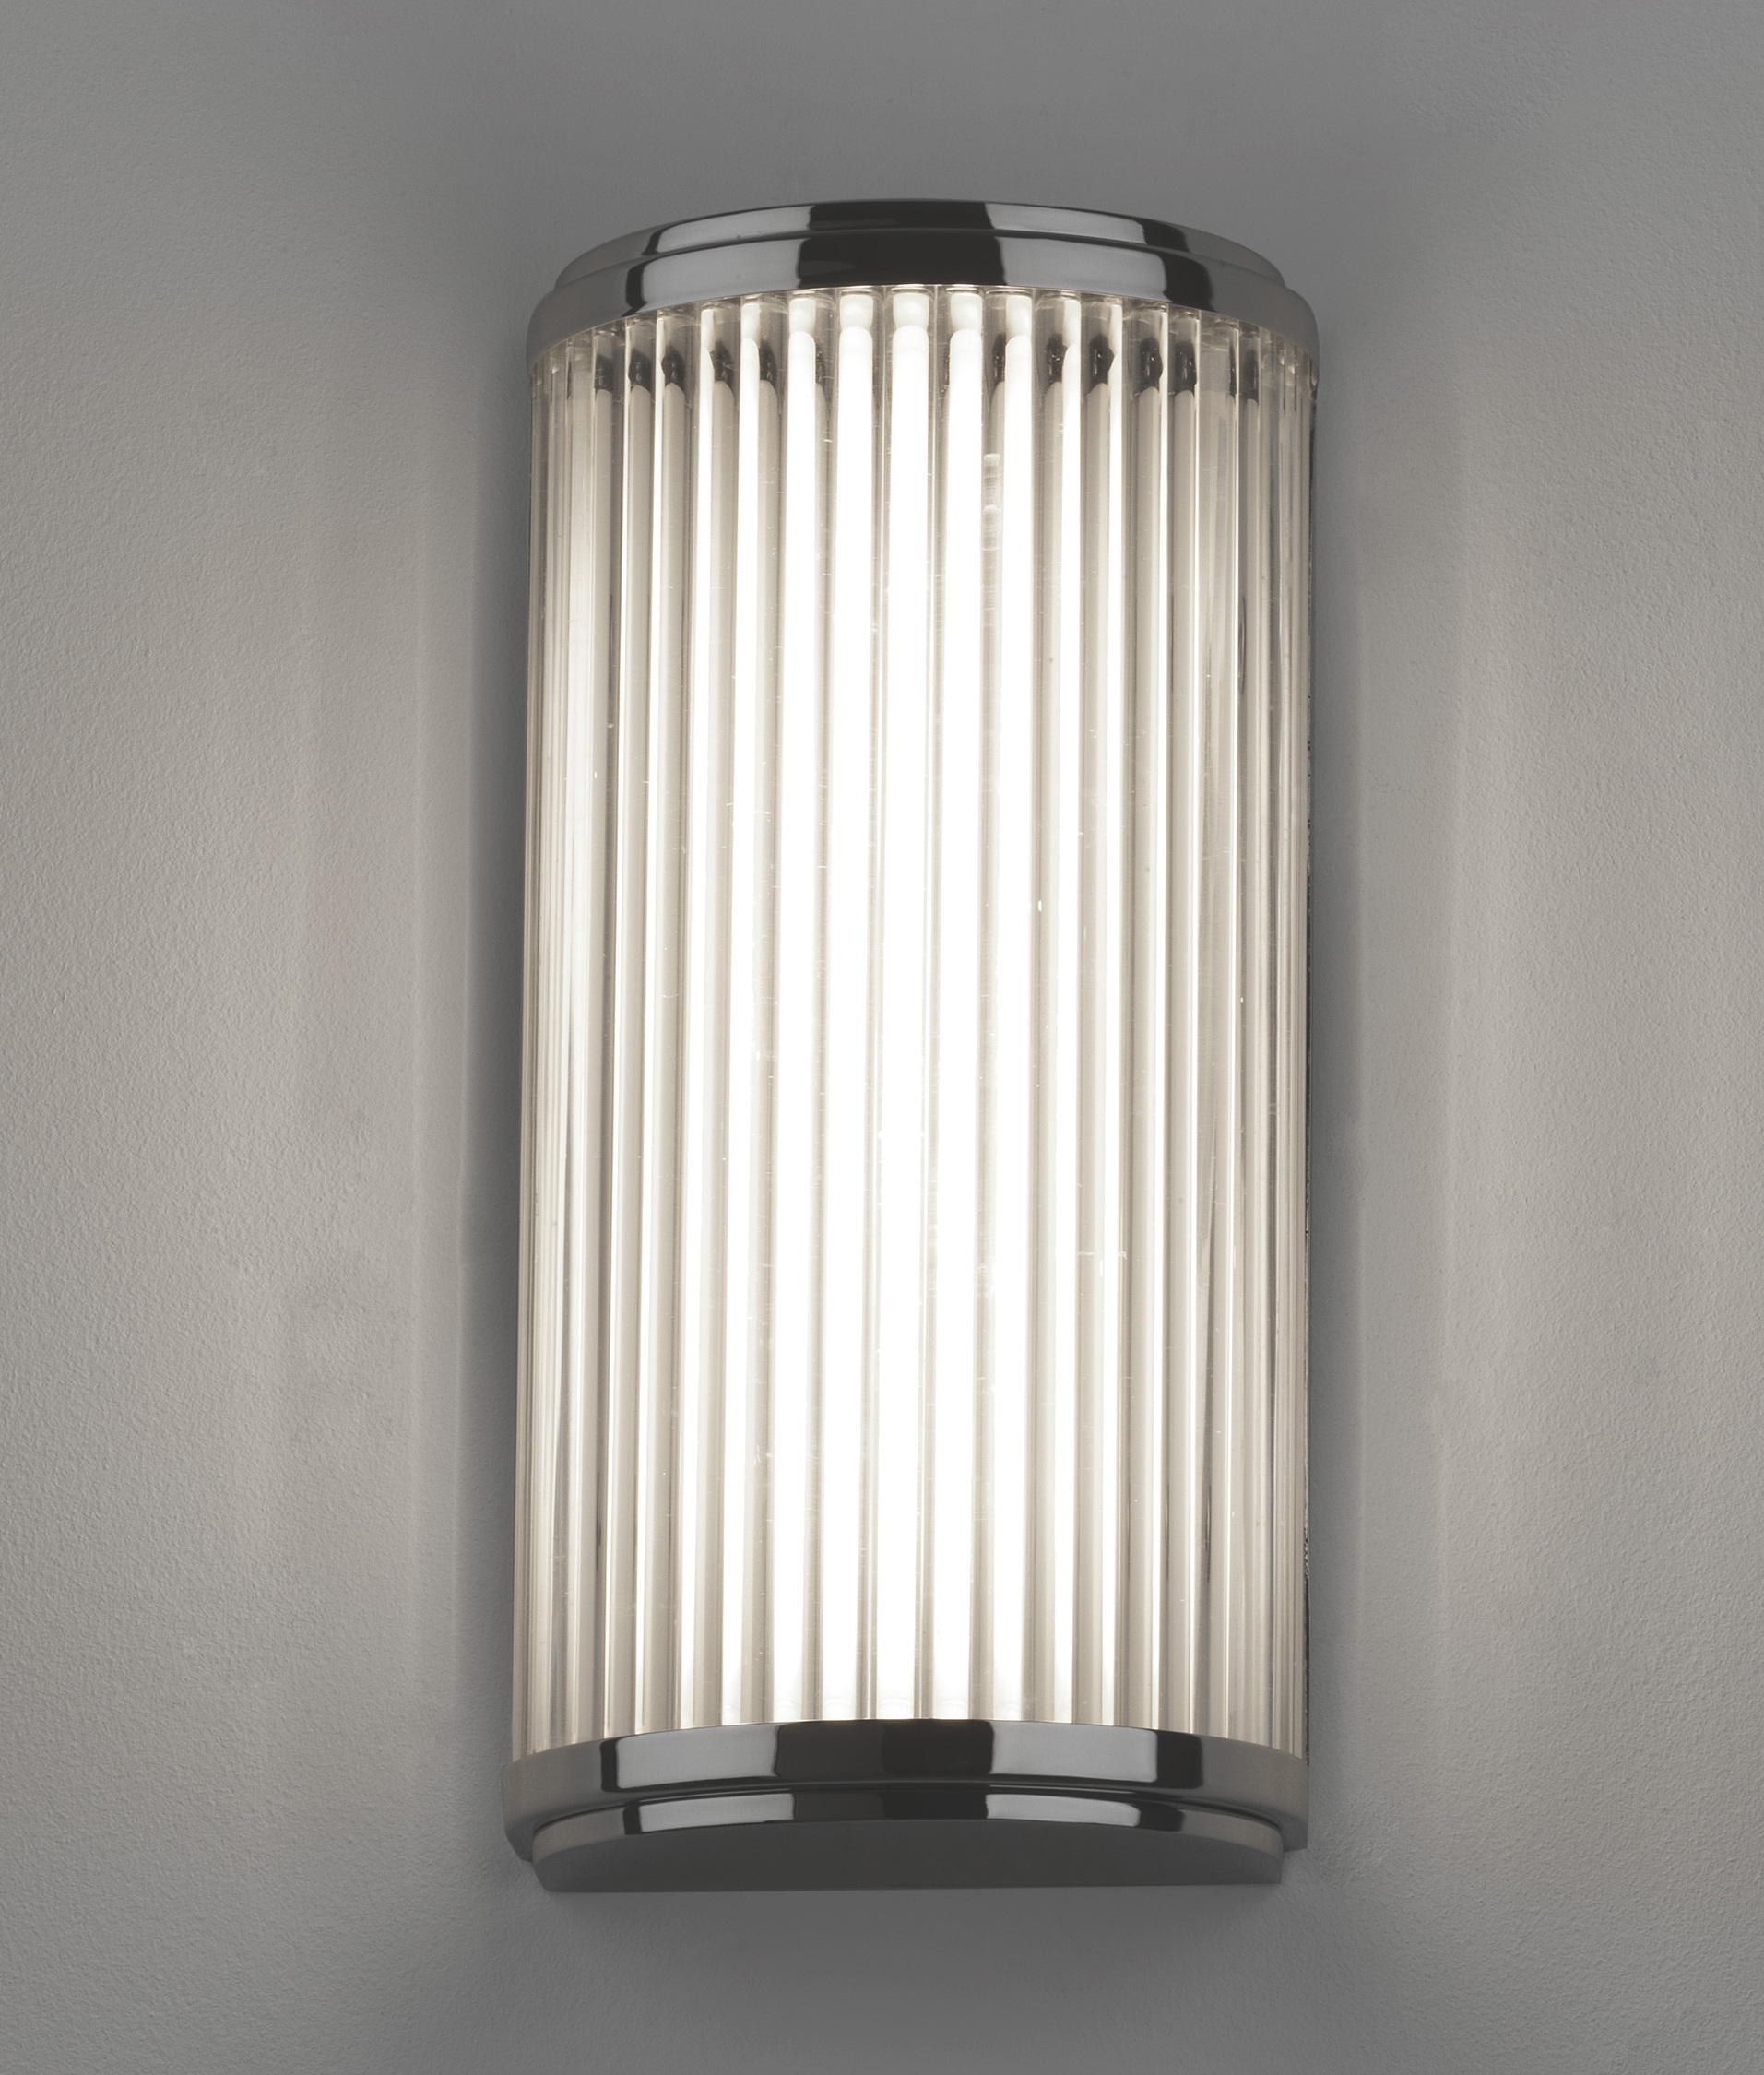 Period Bathrooms Ideas Led Ip44 Wall Light Glass Rods H 250mm